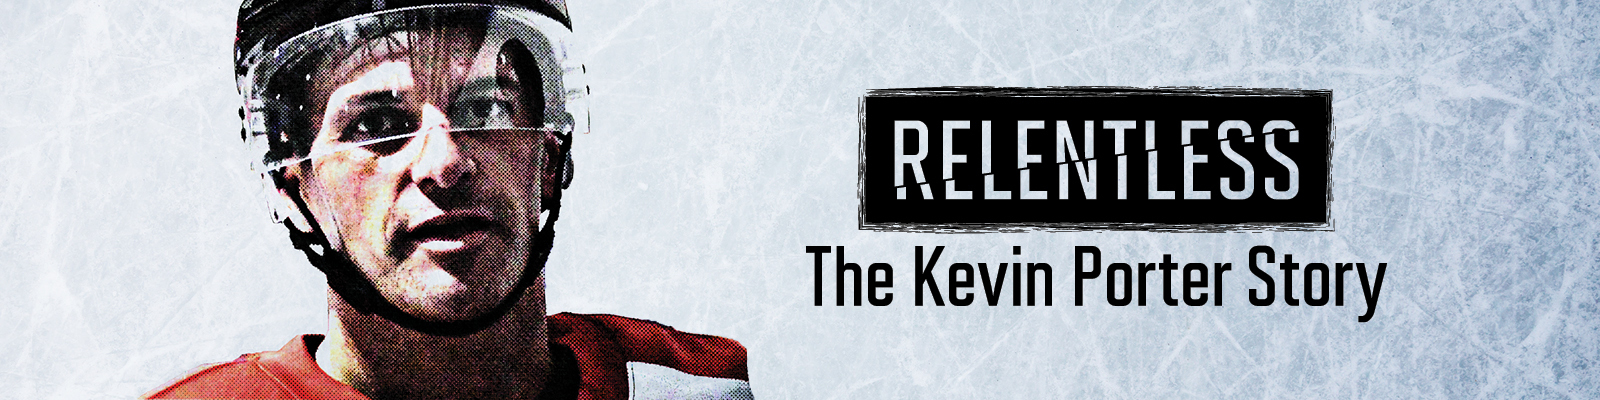 Hockey player in a helmet with the words Relentless: The Kevin Porter Story